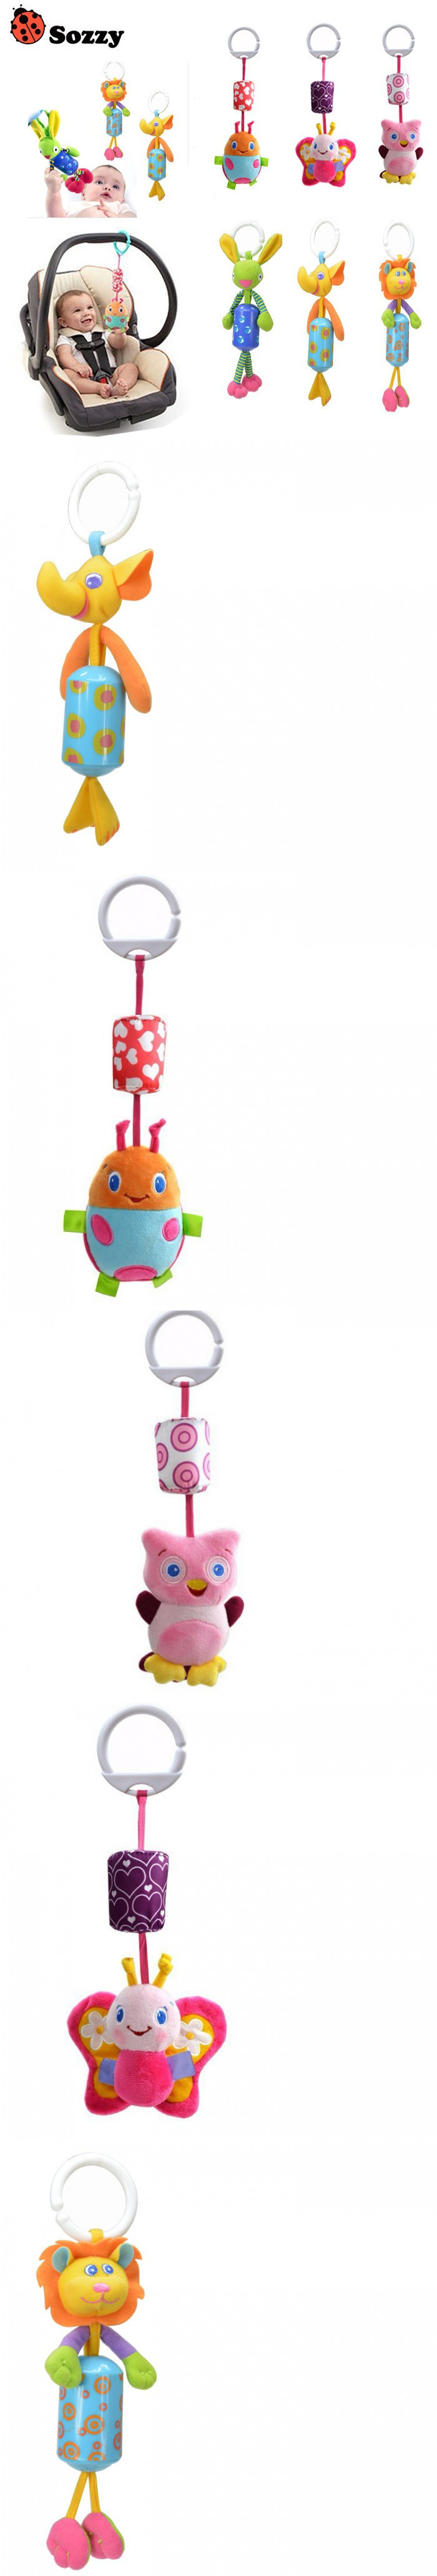 Baby bed mobile - Hot Sale New Infant Toys Mobile Baby Plush Toy Bed Wind Chimes Rattles Bell Toy Stroller